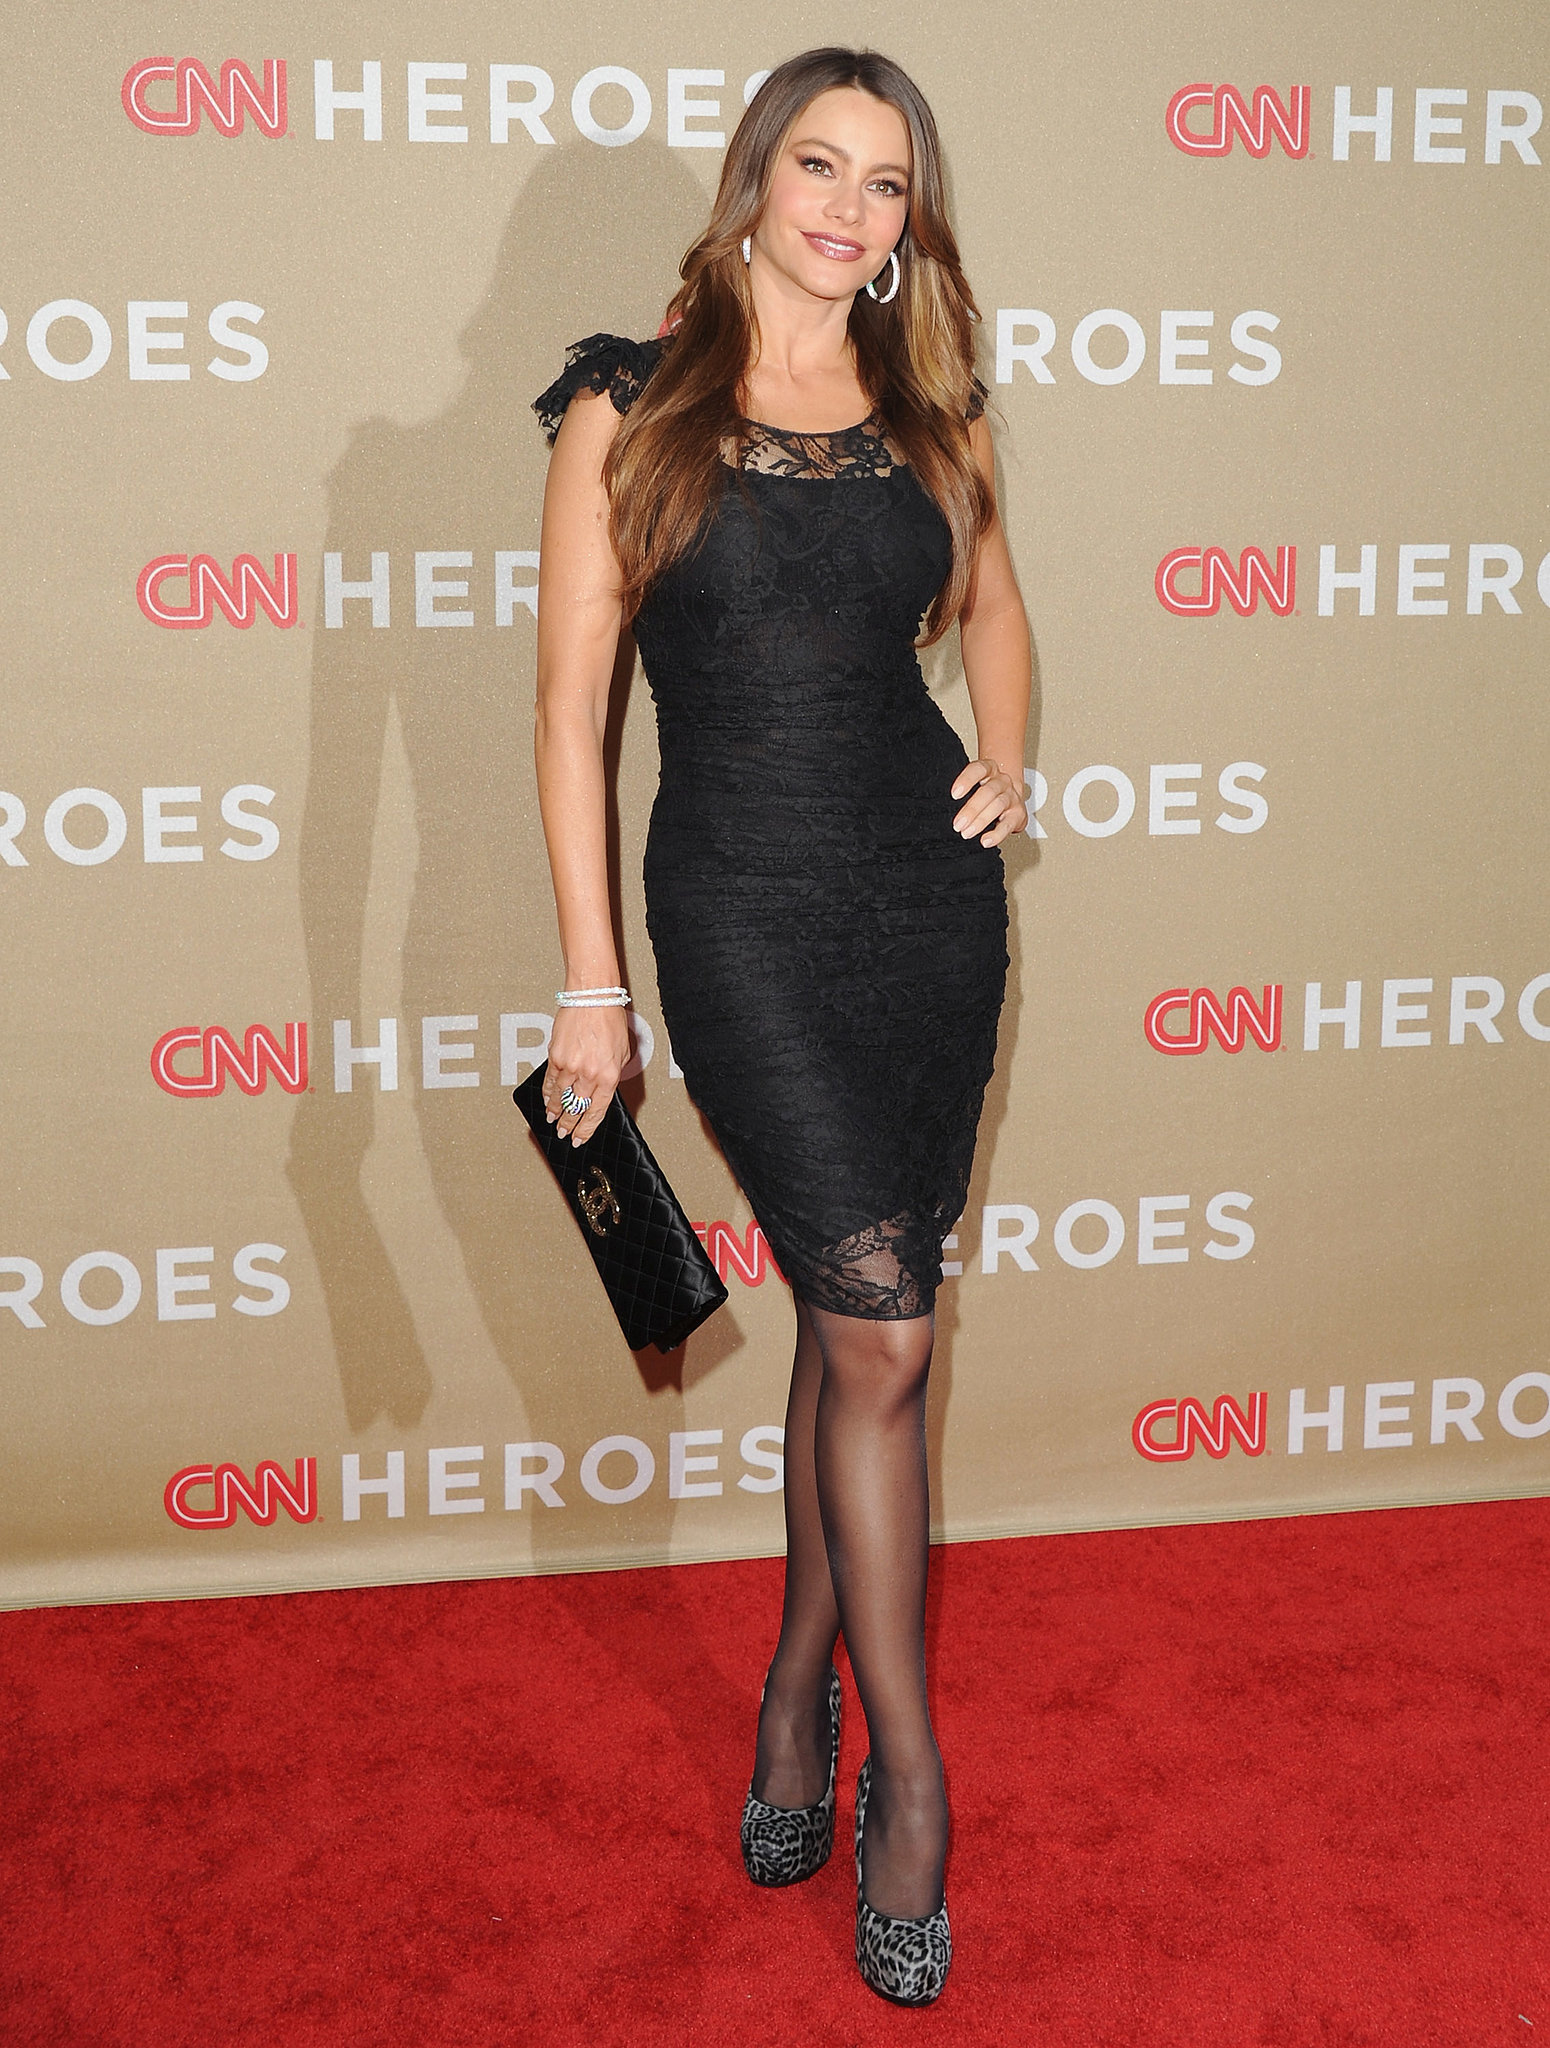 The Columbian beauty showcased major high-fashion growl power in a lacy cap-sleeved LBD, leopard platforms, and a quilted Chanel clutch for a 2011 CNN Heroes event.